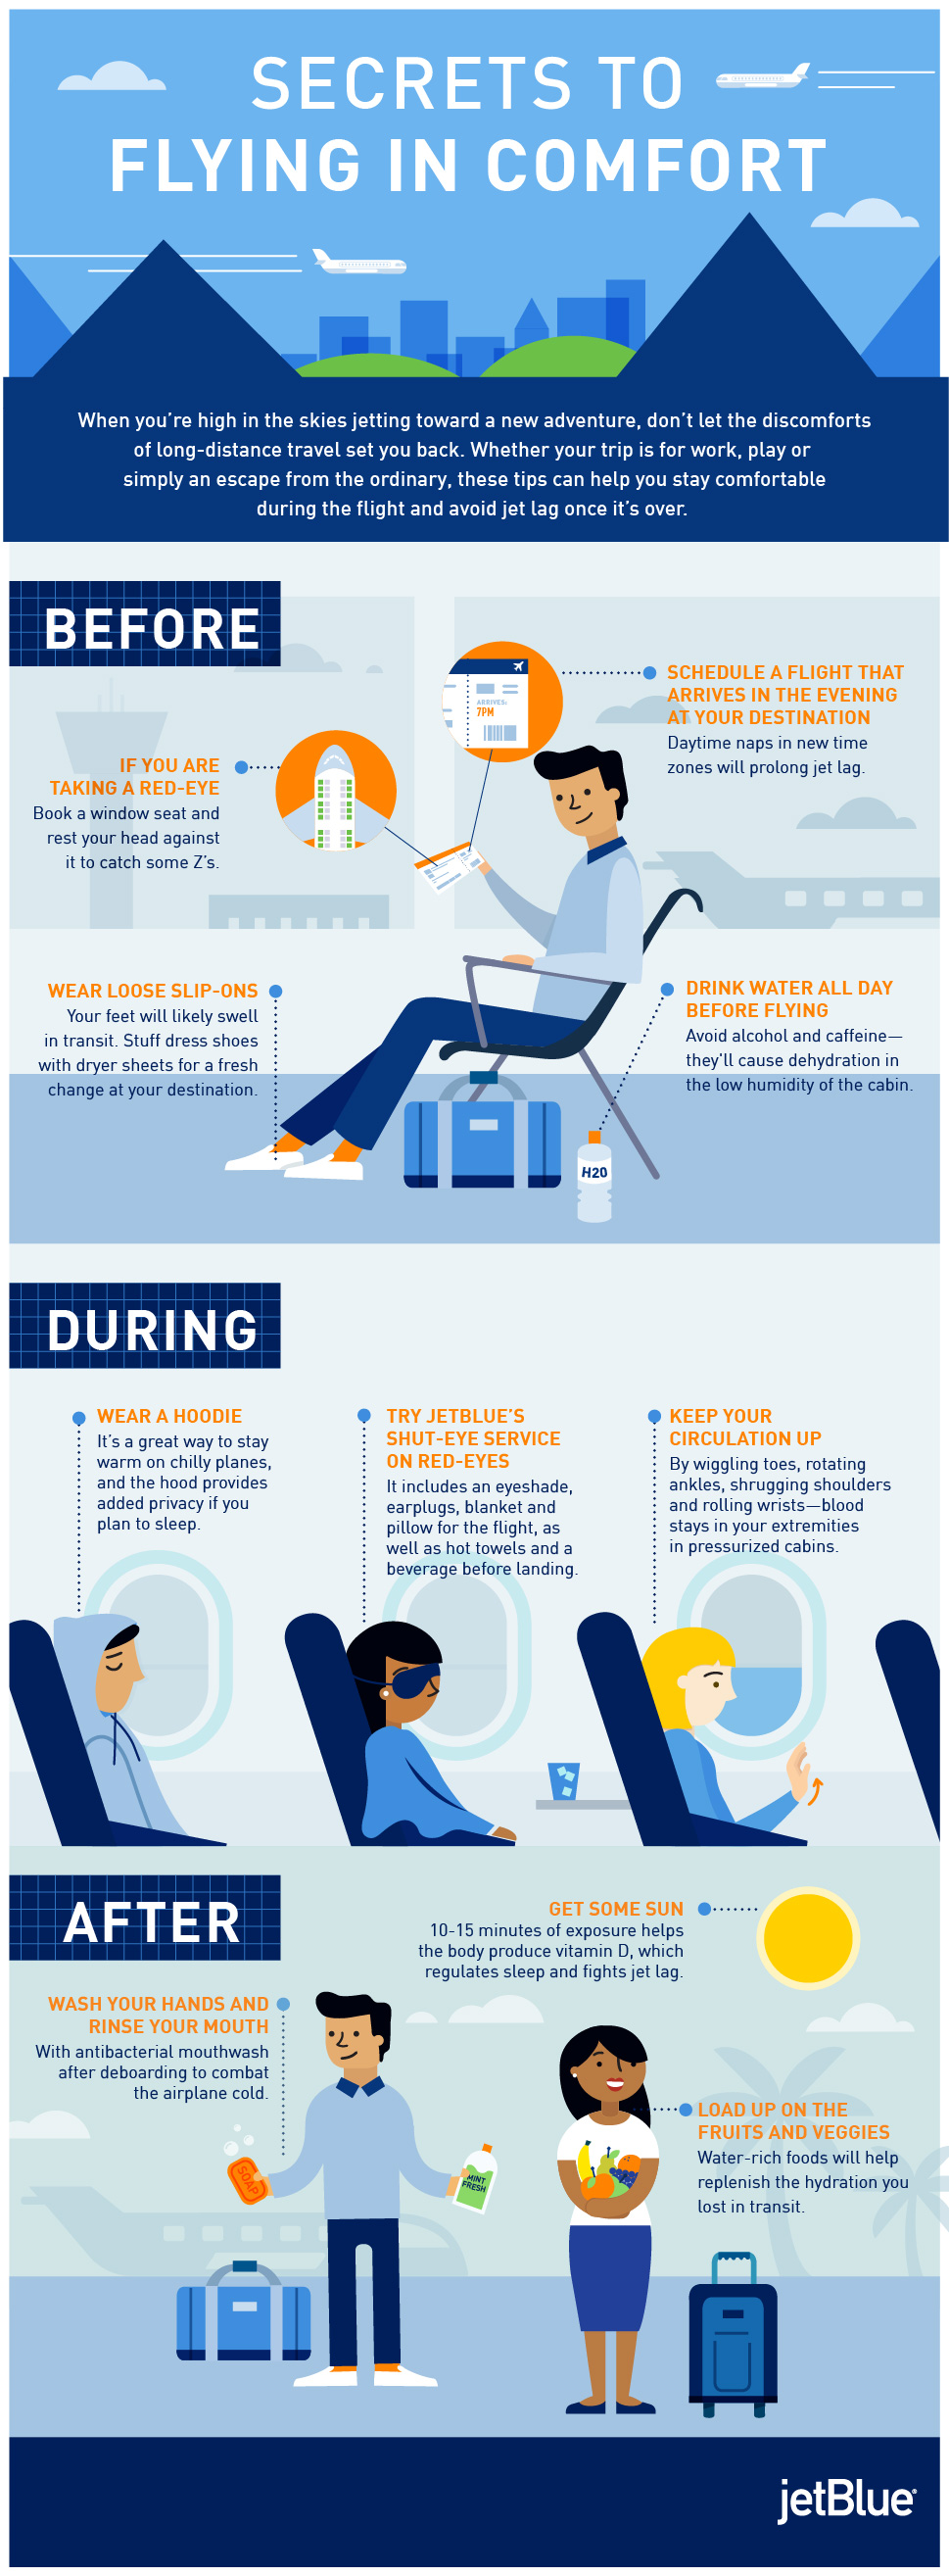 jetBlue - Secrets to Flying in Comfort